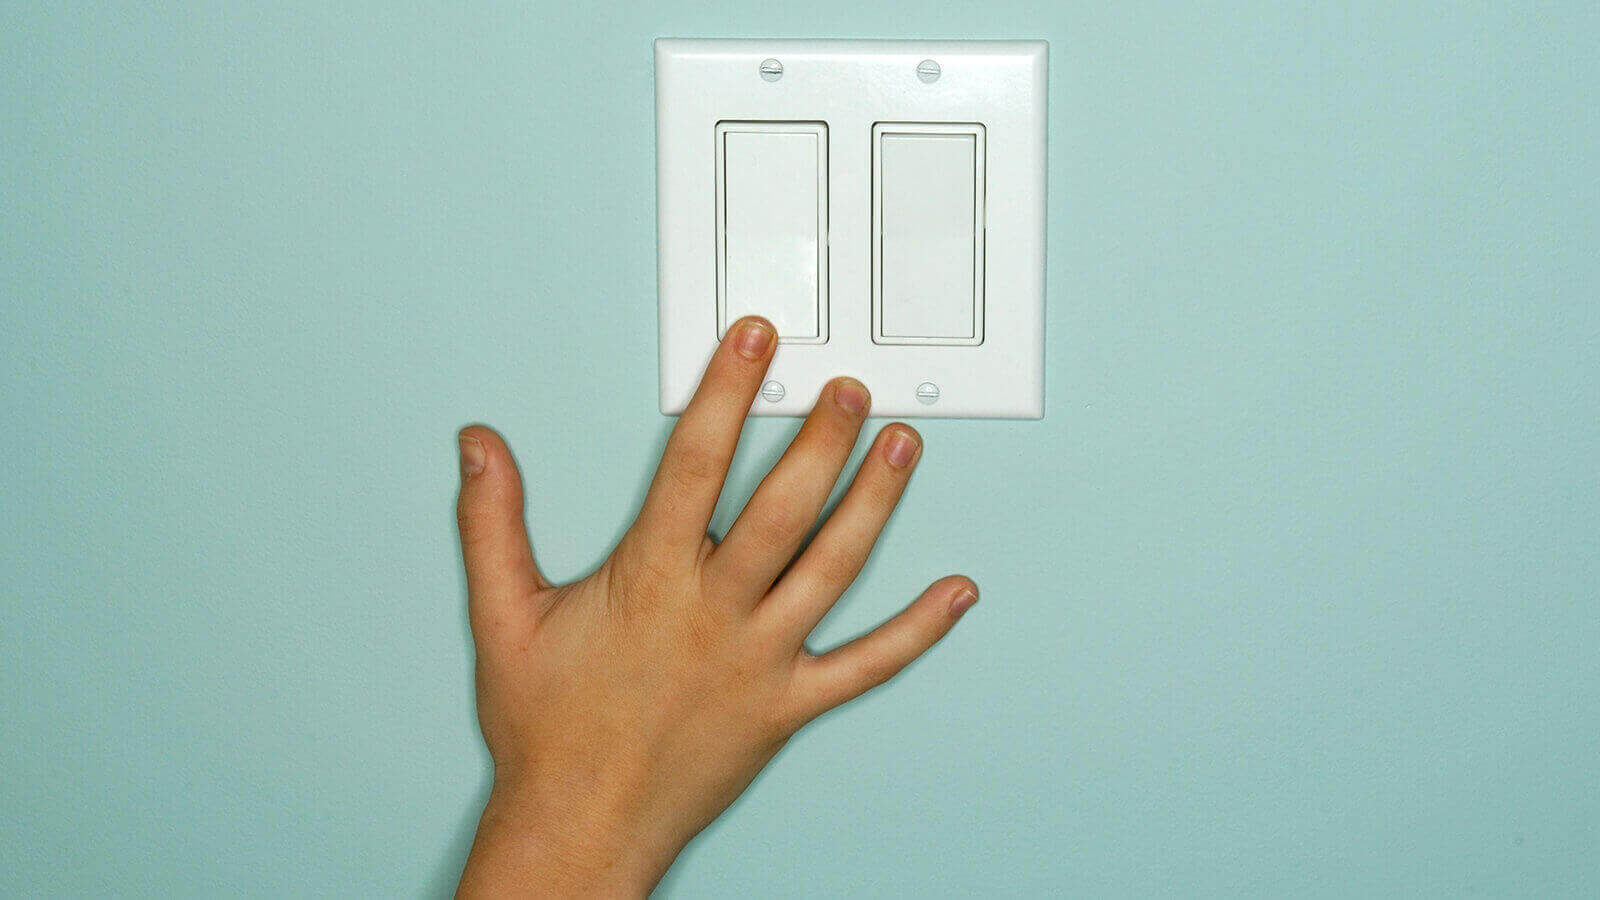 image showing a light switch